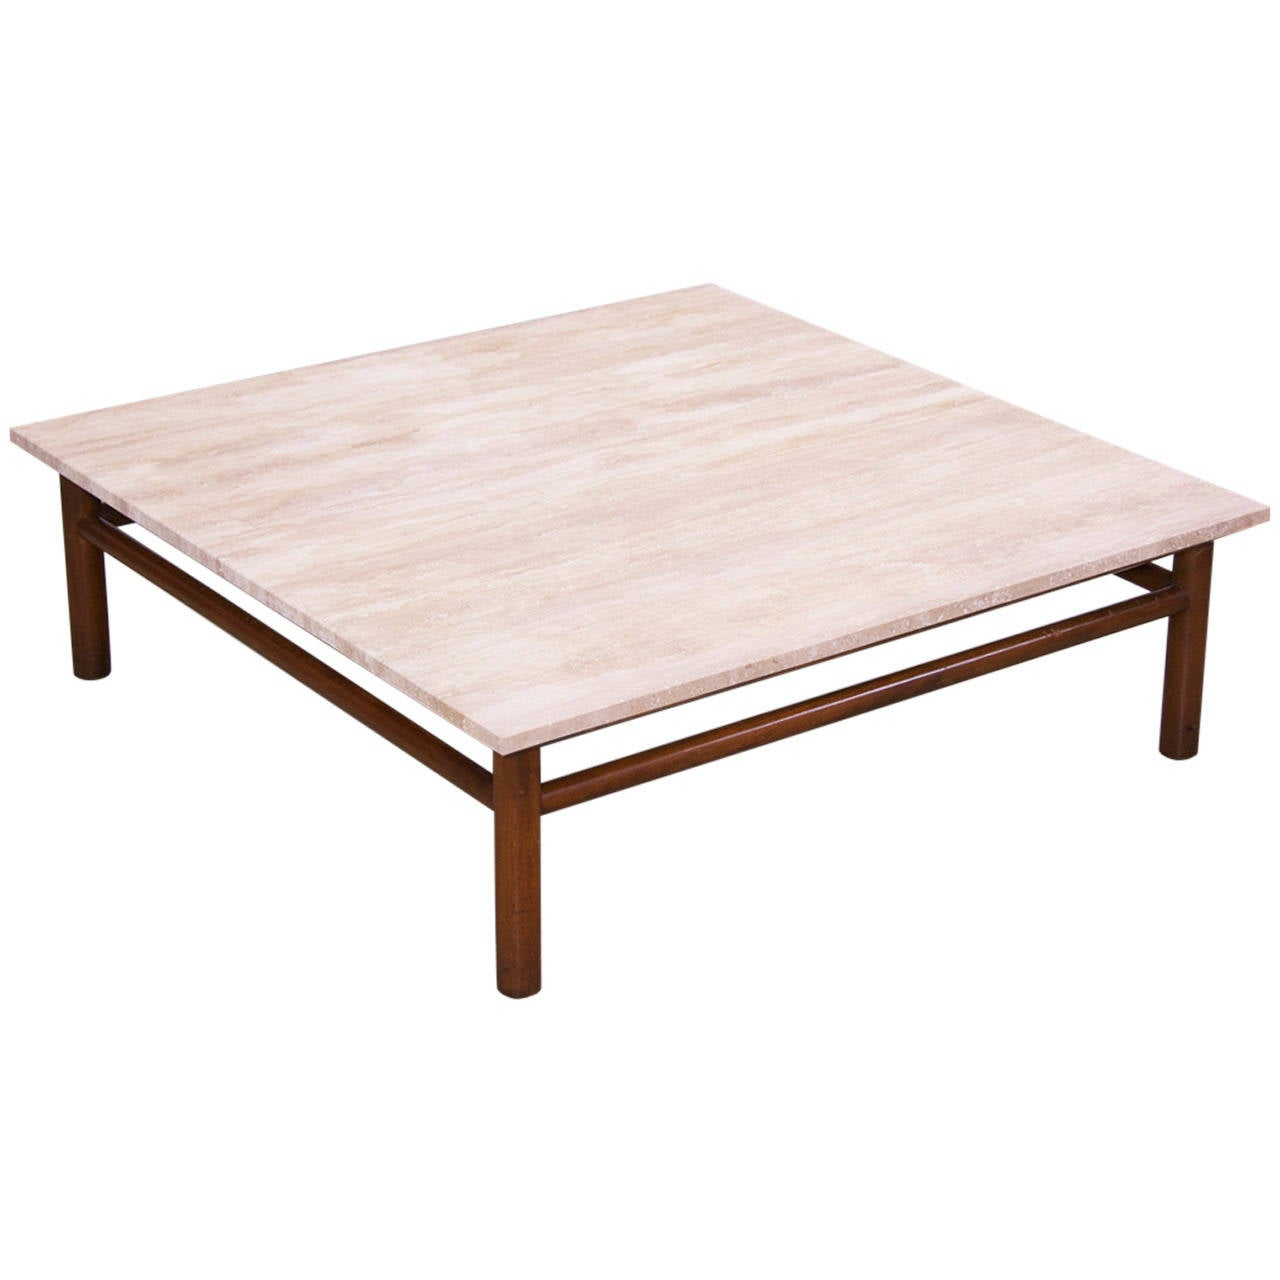 Coffee Table By T H Robsjohn Gibbings For Widdicomb With Travertine